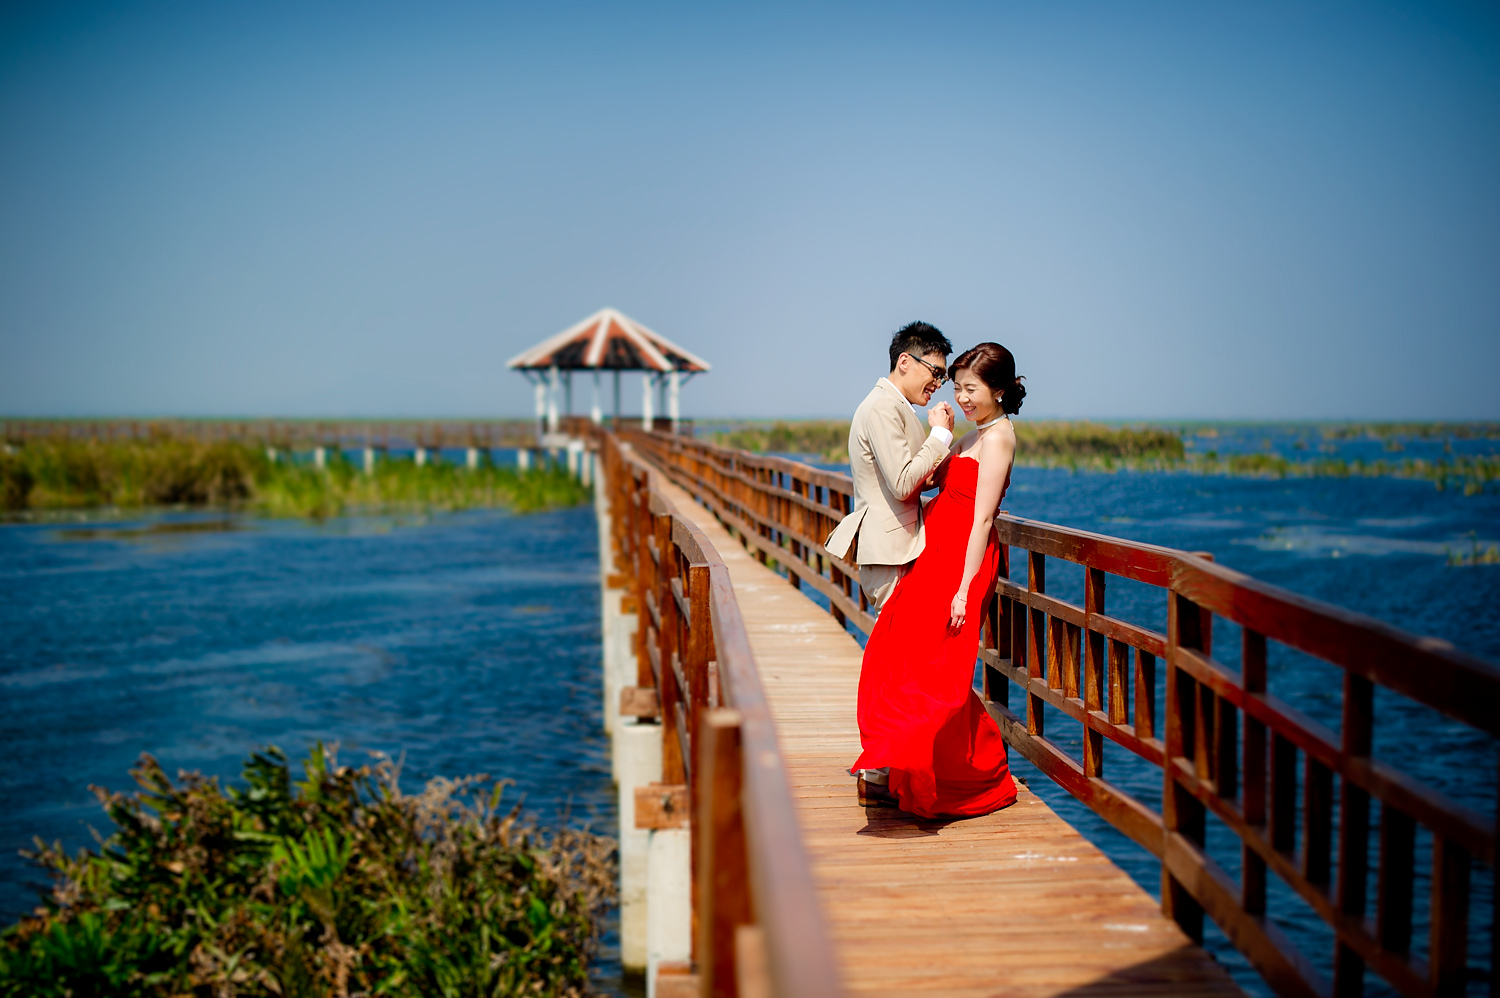 Hua Hin Pre-Wedding: Khao Sam Roi Yot National Park – Hua Hin Beach – Aleenta Hua Hin Resort & Spa